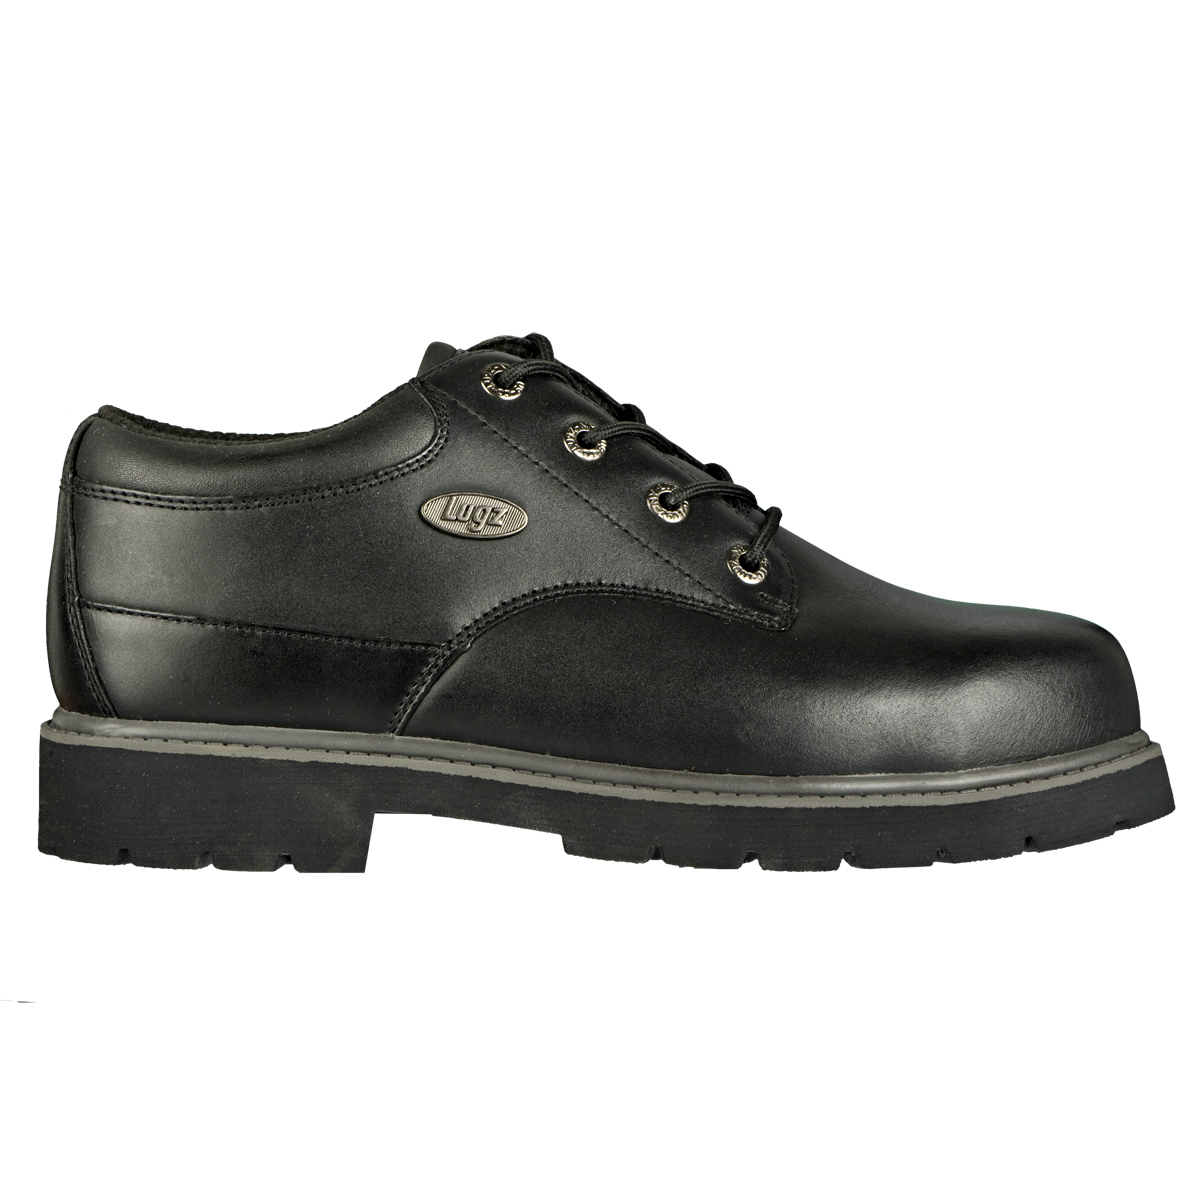 Lugz Drifter LO Steel Toe Mens Workproof Black